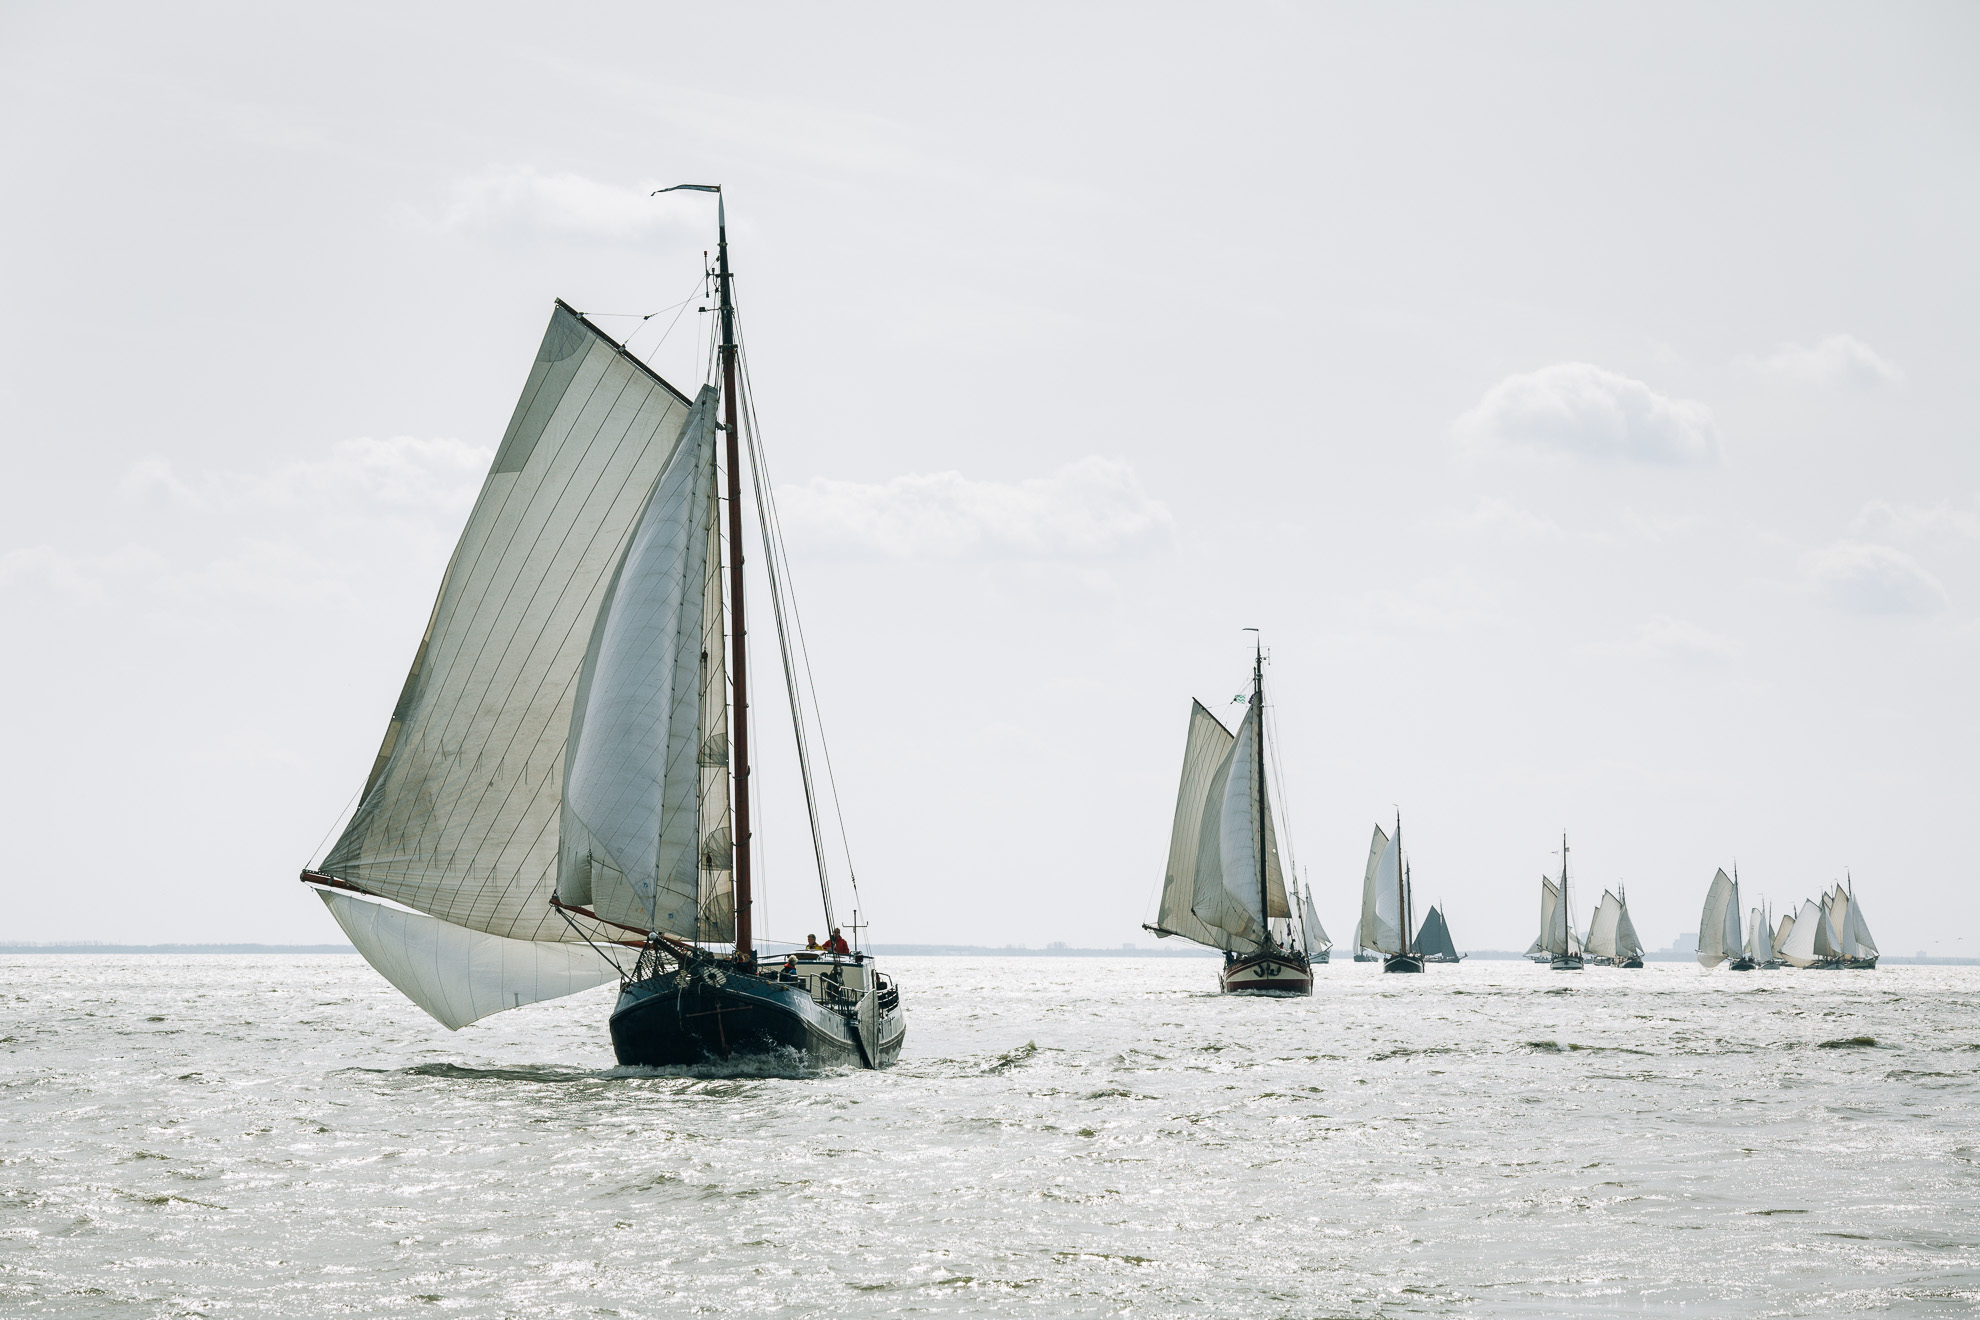 Clipper Race on the Avontuur, IJsselmeer, The Netherlands